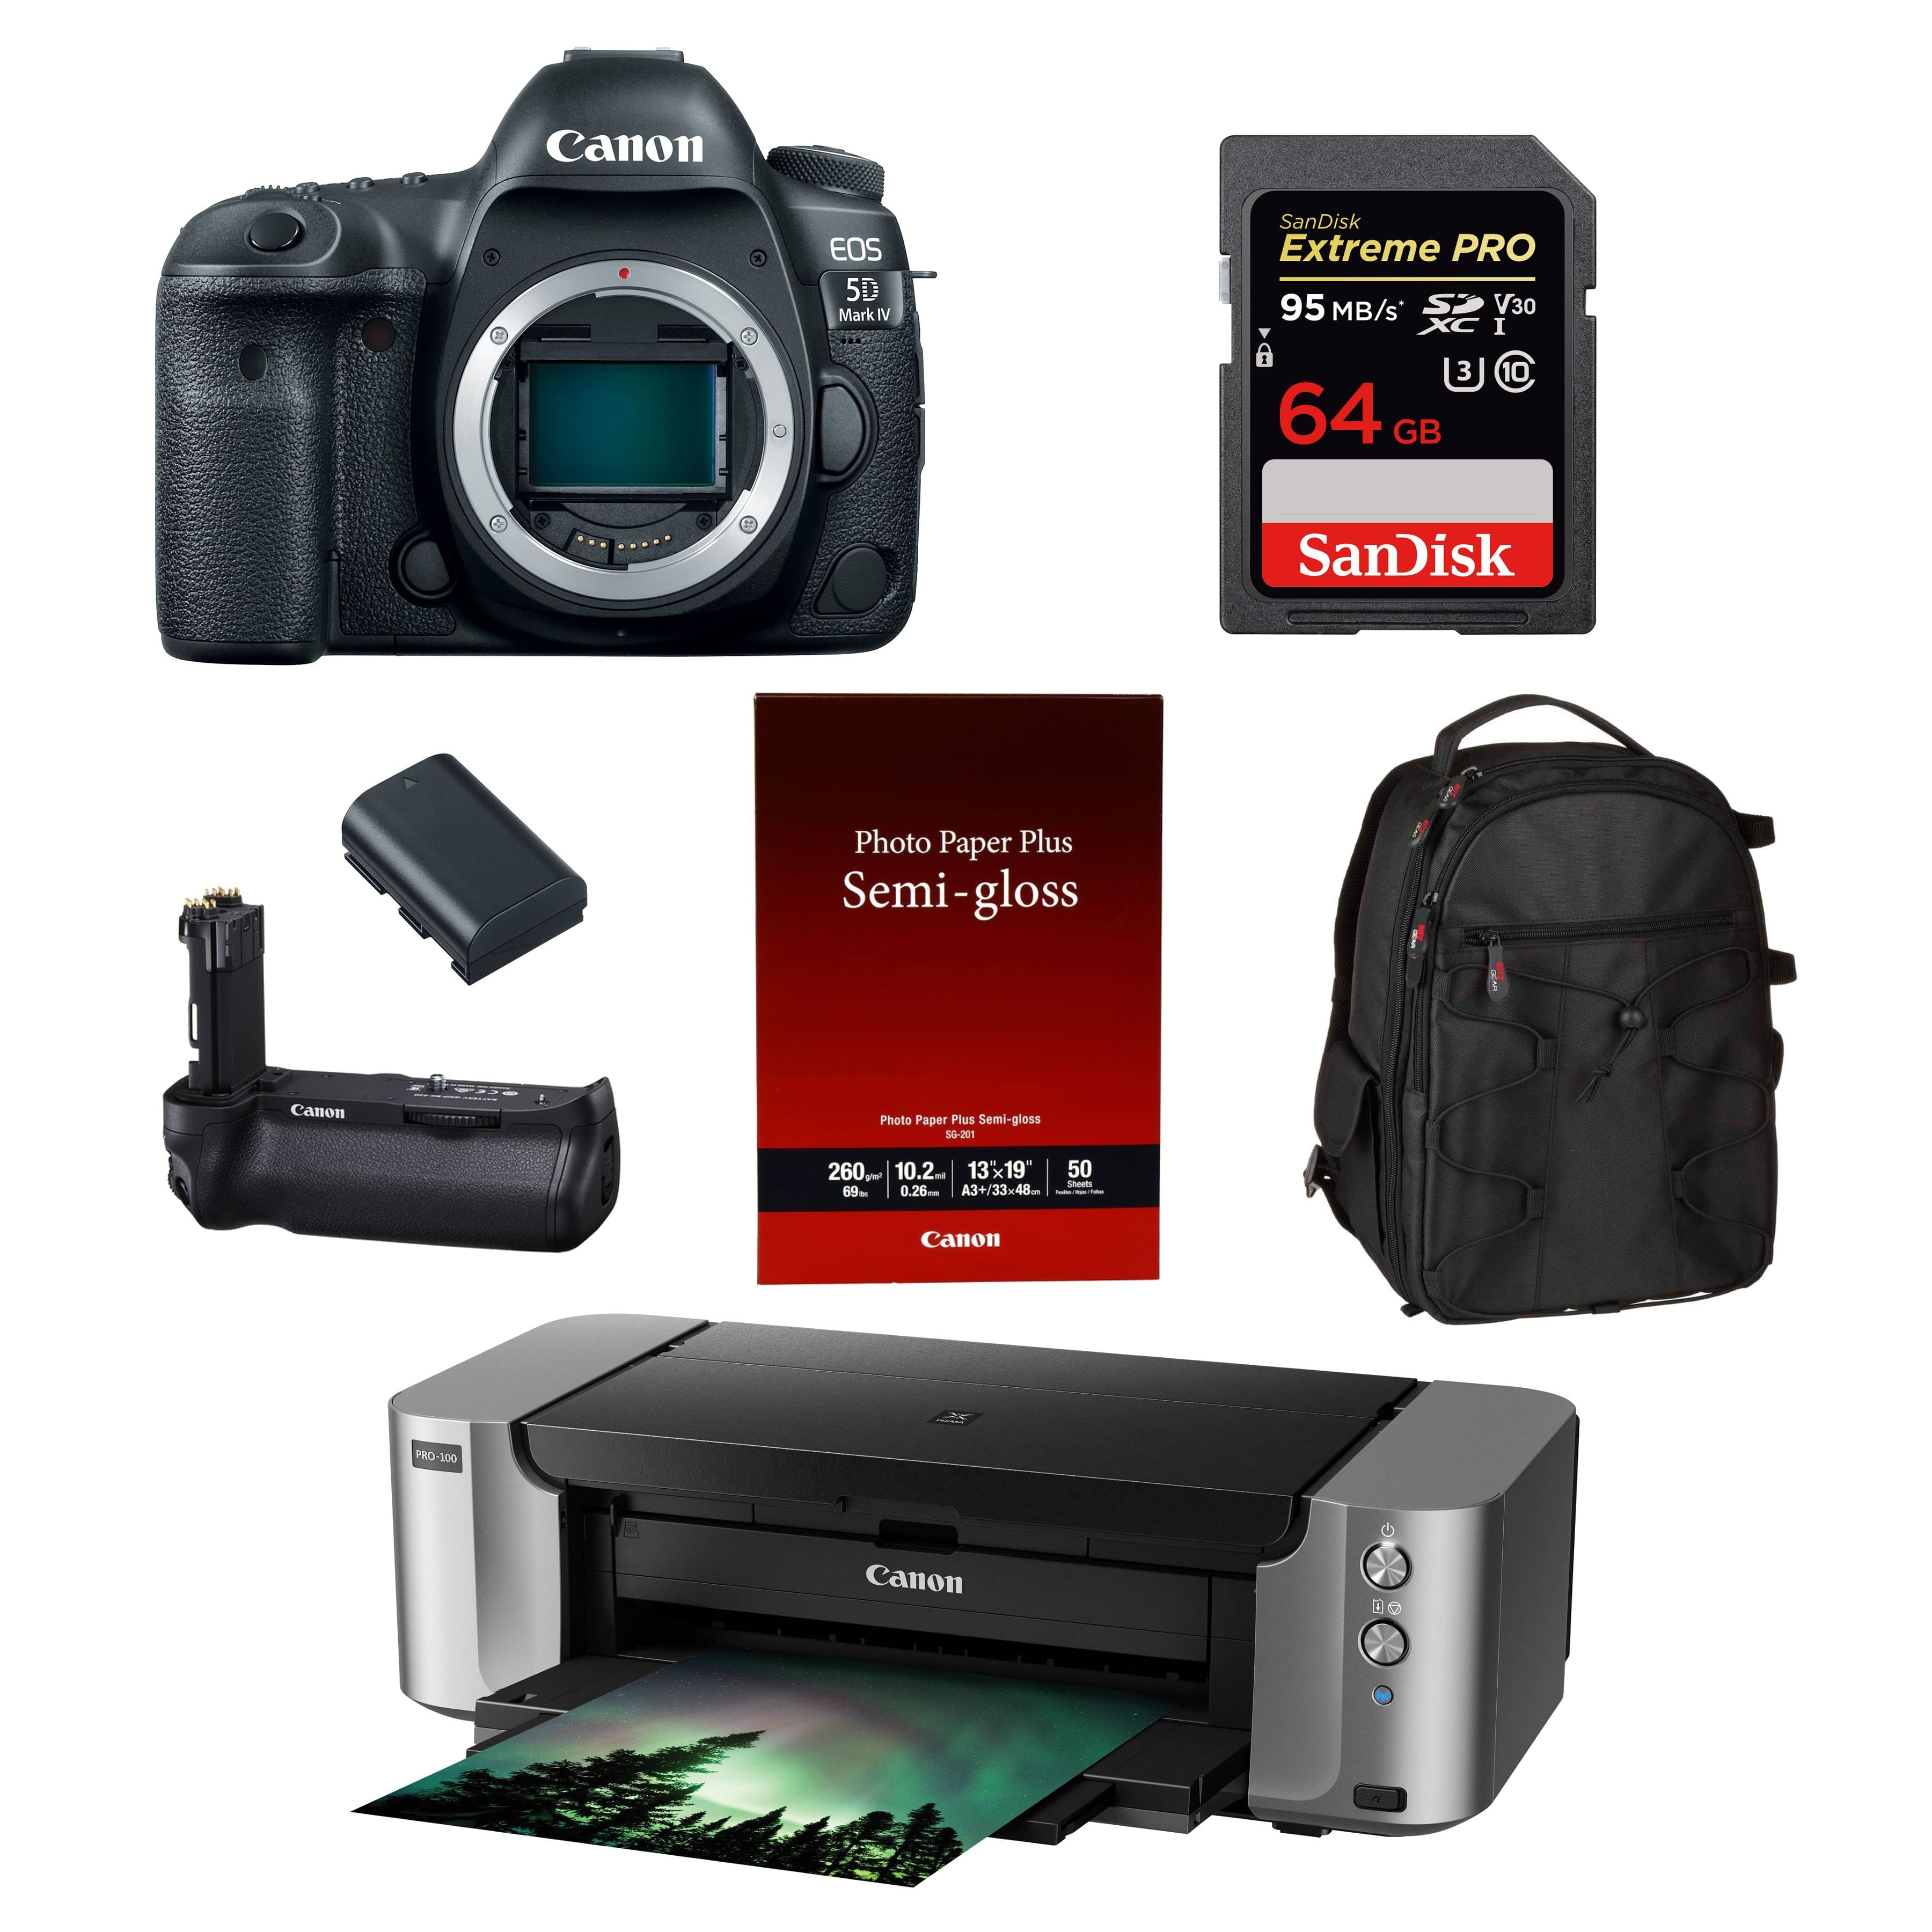 Canon EOS 5D Mark IV 30.4MP Full Frame DSLR Camera Body With BGE20 Grip + Pixma Pro-100 Printer + Paper + 64GB Memory Card + Spare Battery + Photo Backpack $2849 AR + FS